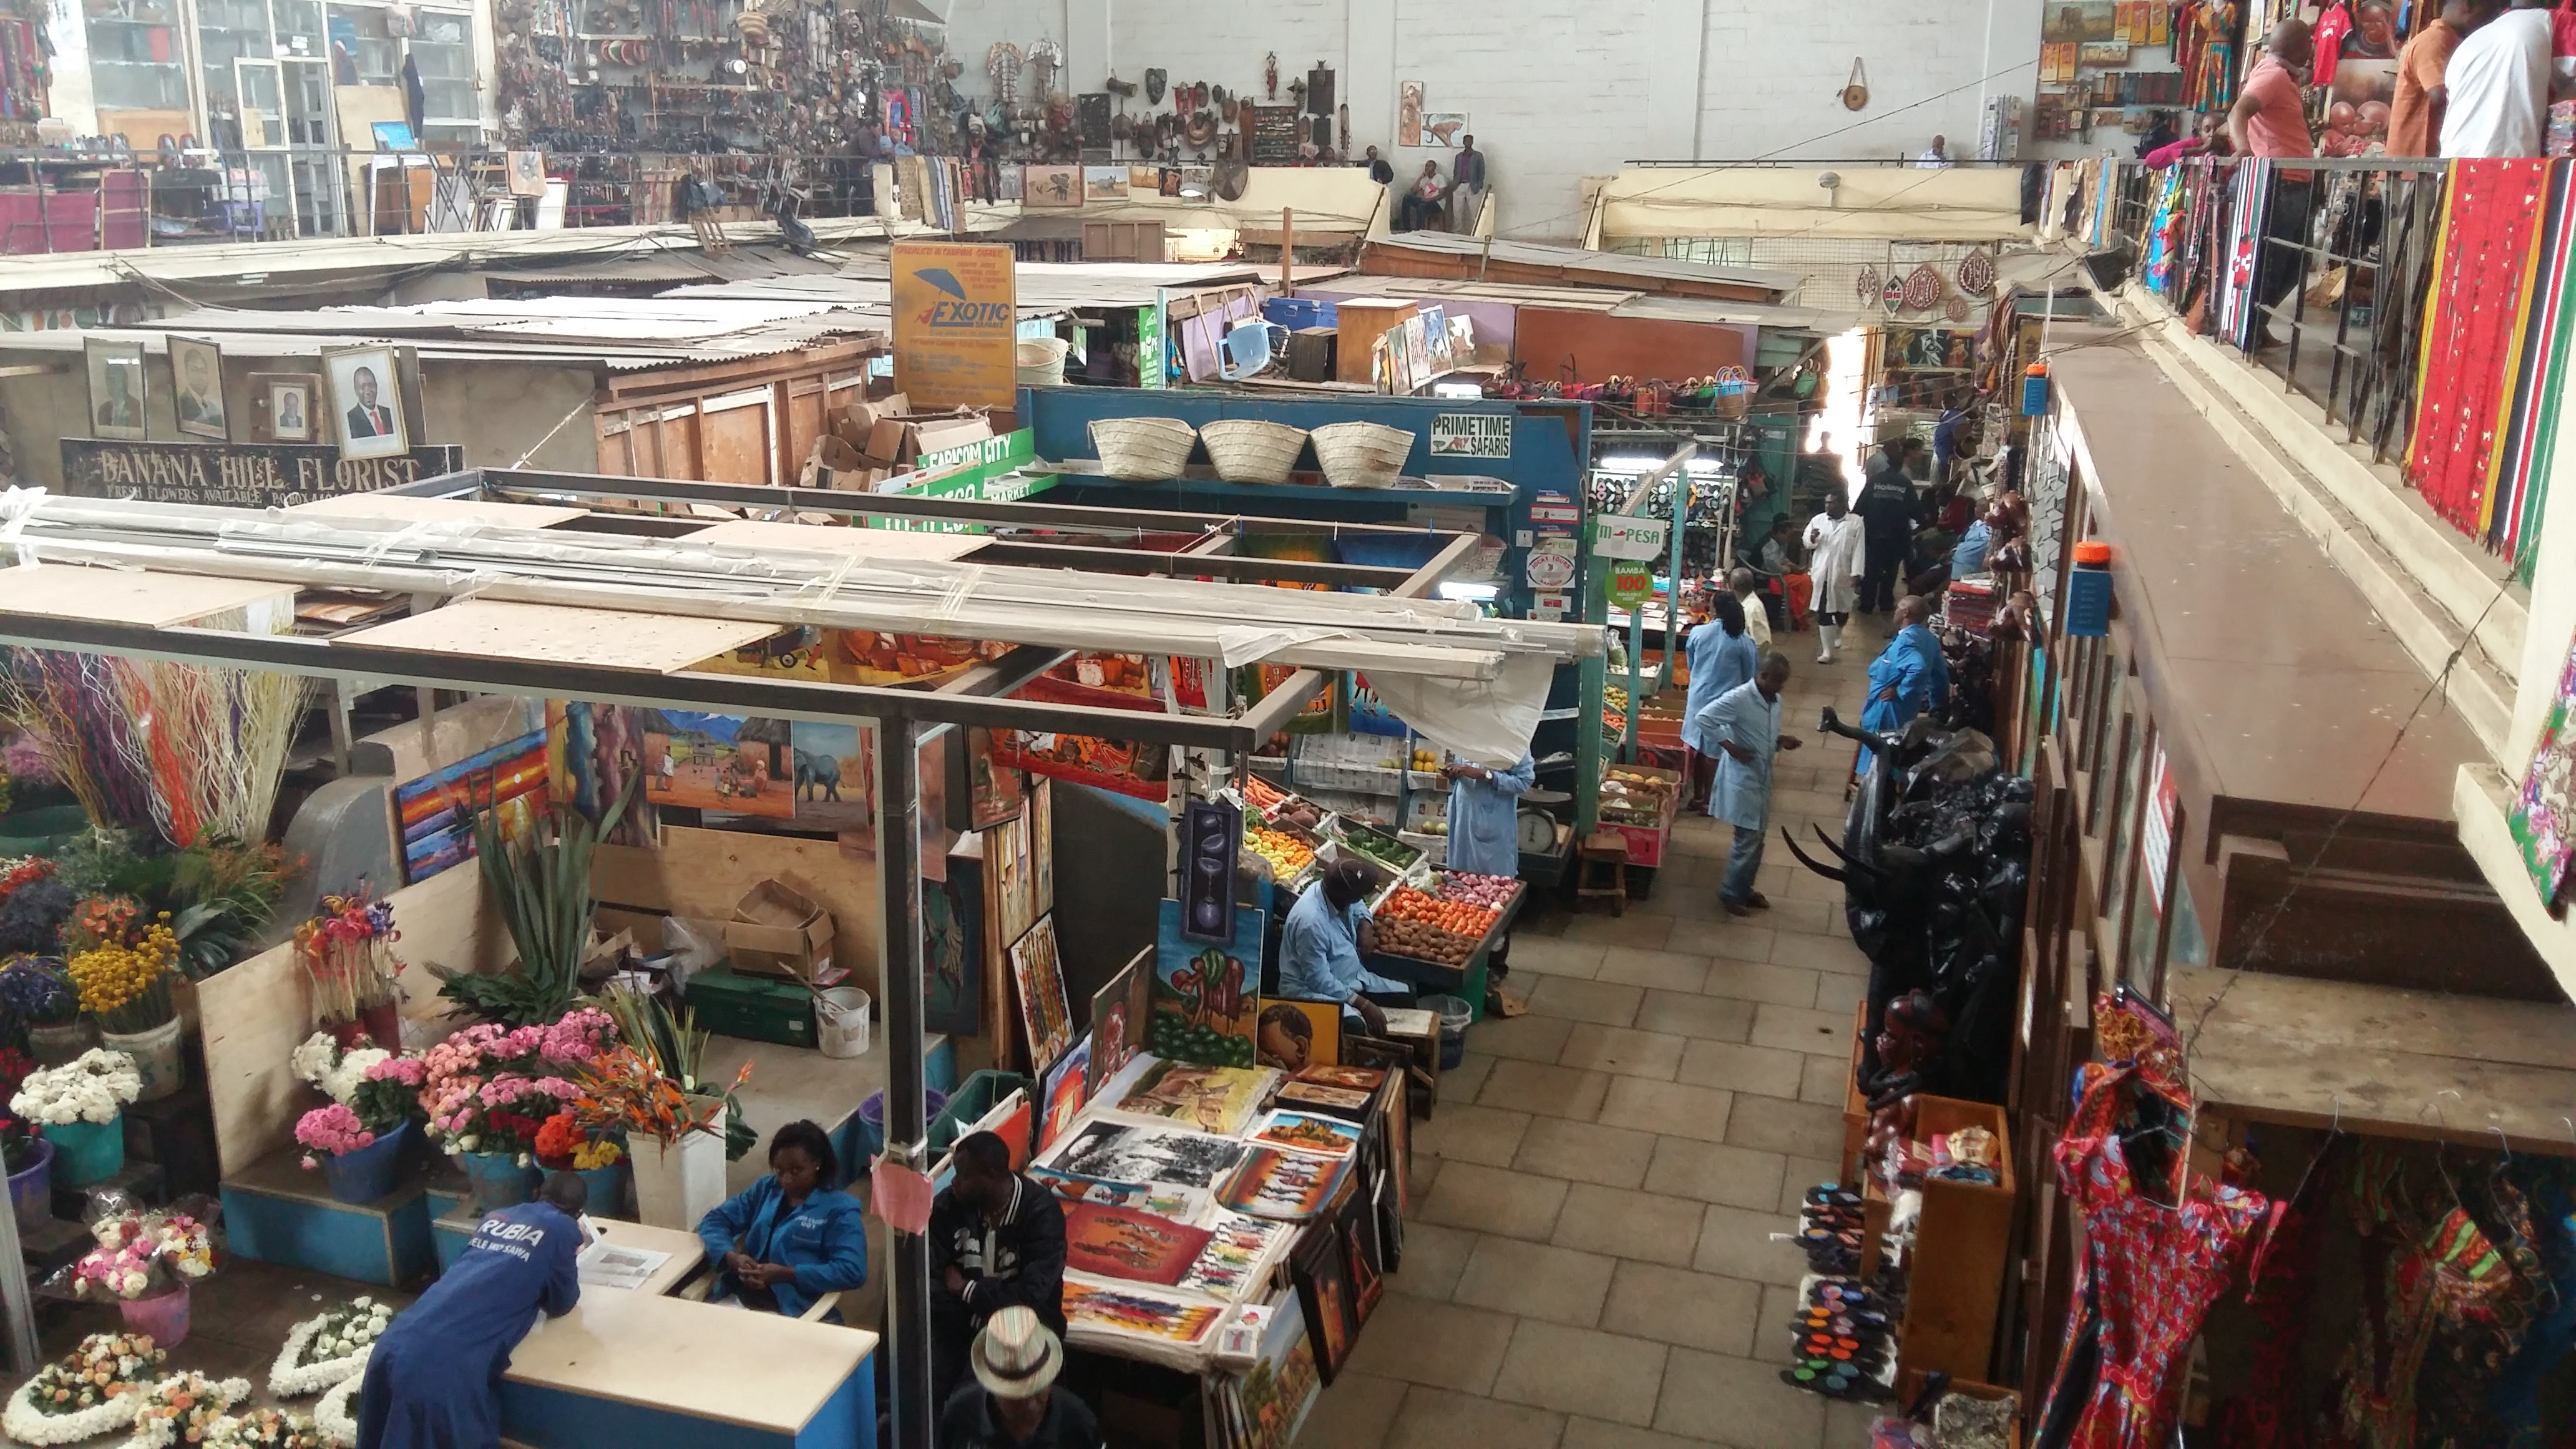 More vendors display their wares on the ground floor of the market